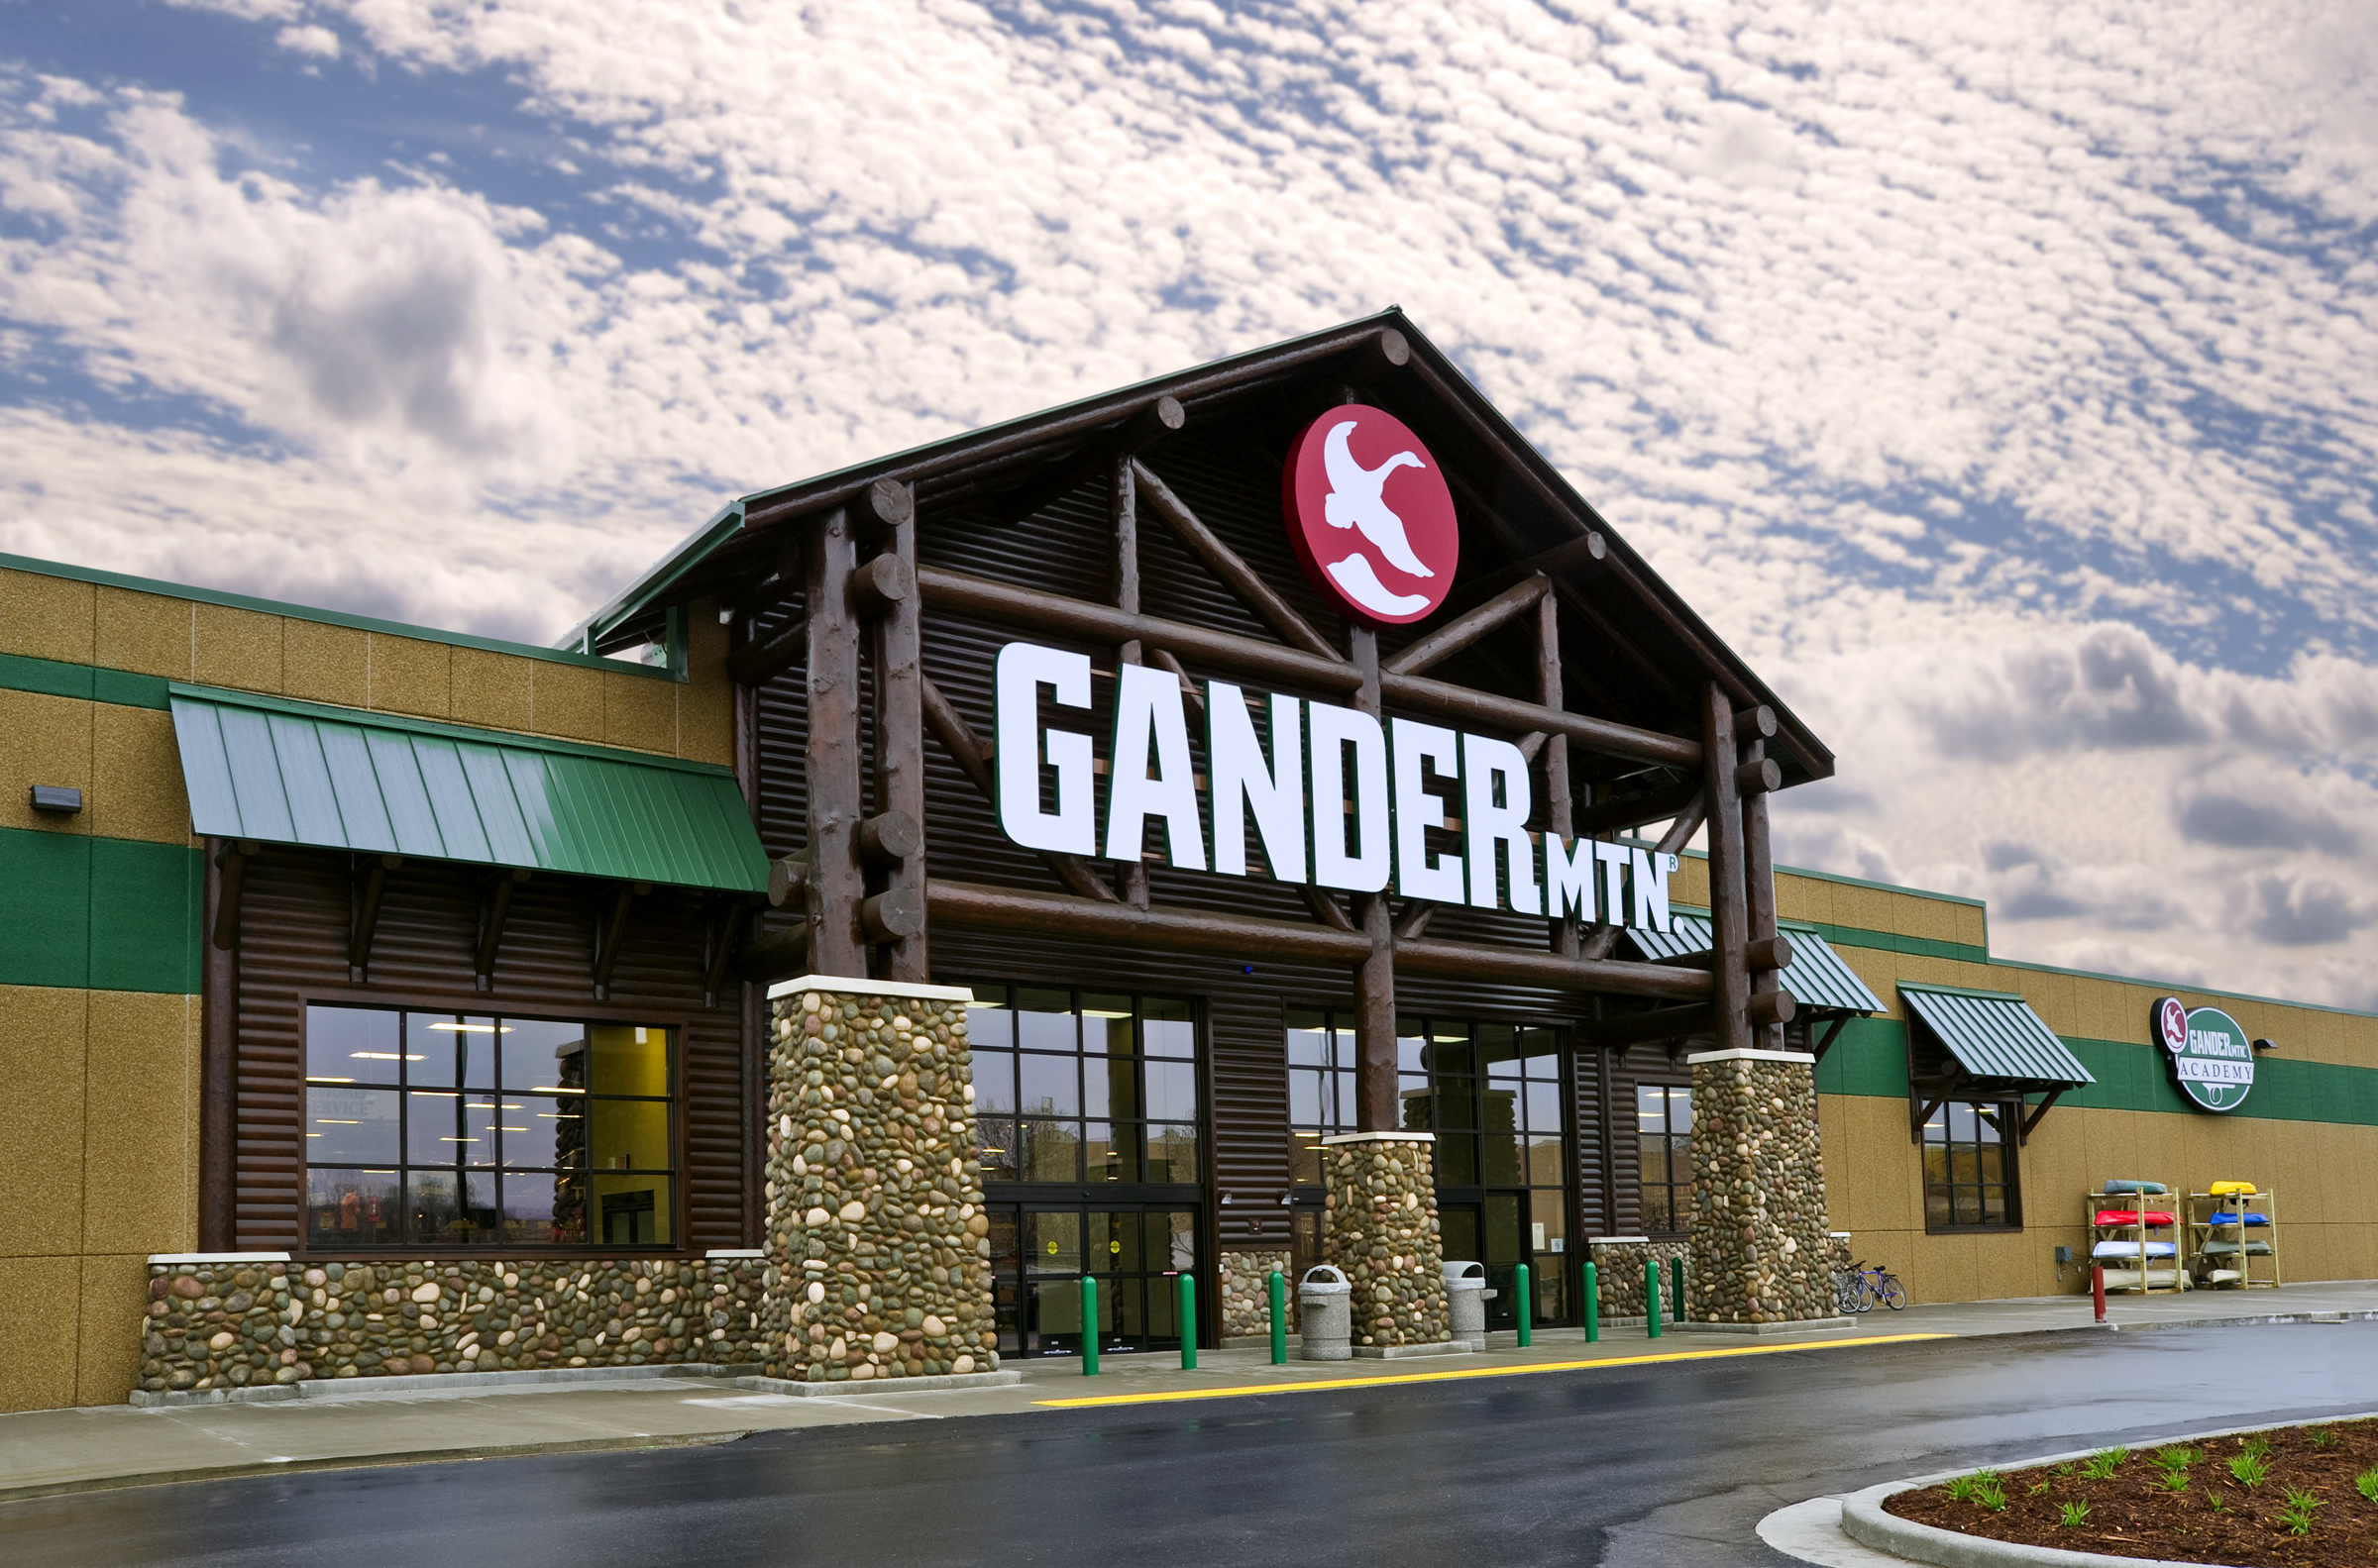 Taking a gander: Sears, Roebuck and Co. and Gander Mountain Inc. announced they have reached agreement to test two catalogs this spring featuring fishing, camping and related outdoor equipment.